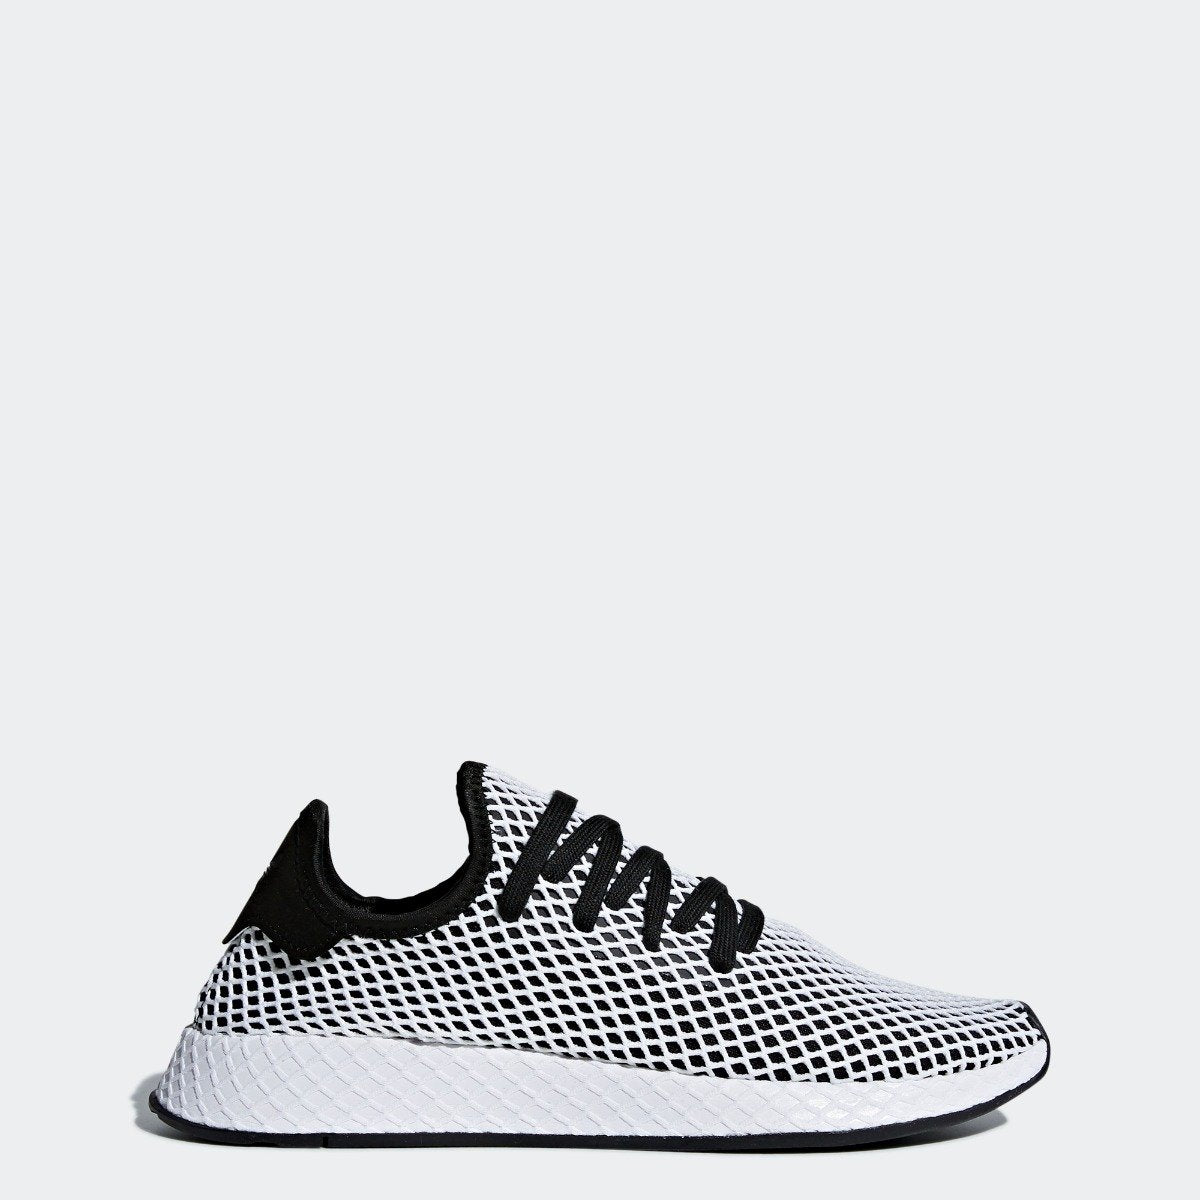 7ef75c7f490b9 Men s adidas Originals Deerupt Runner Shoes Core Black and White ...